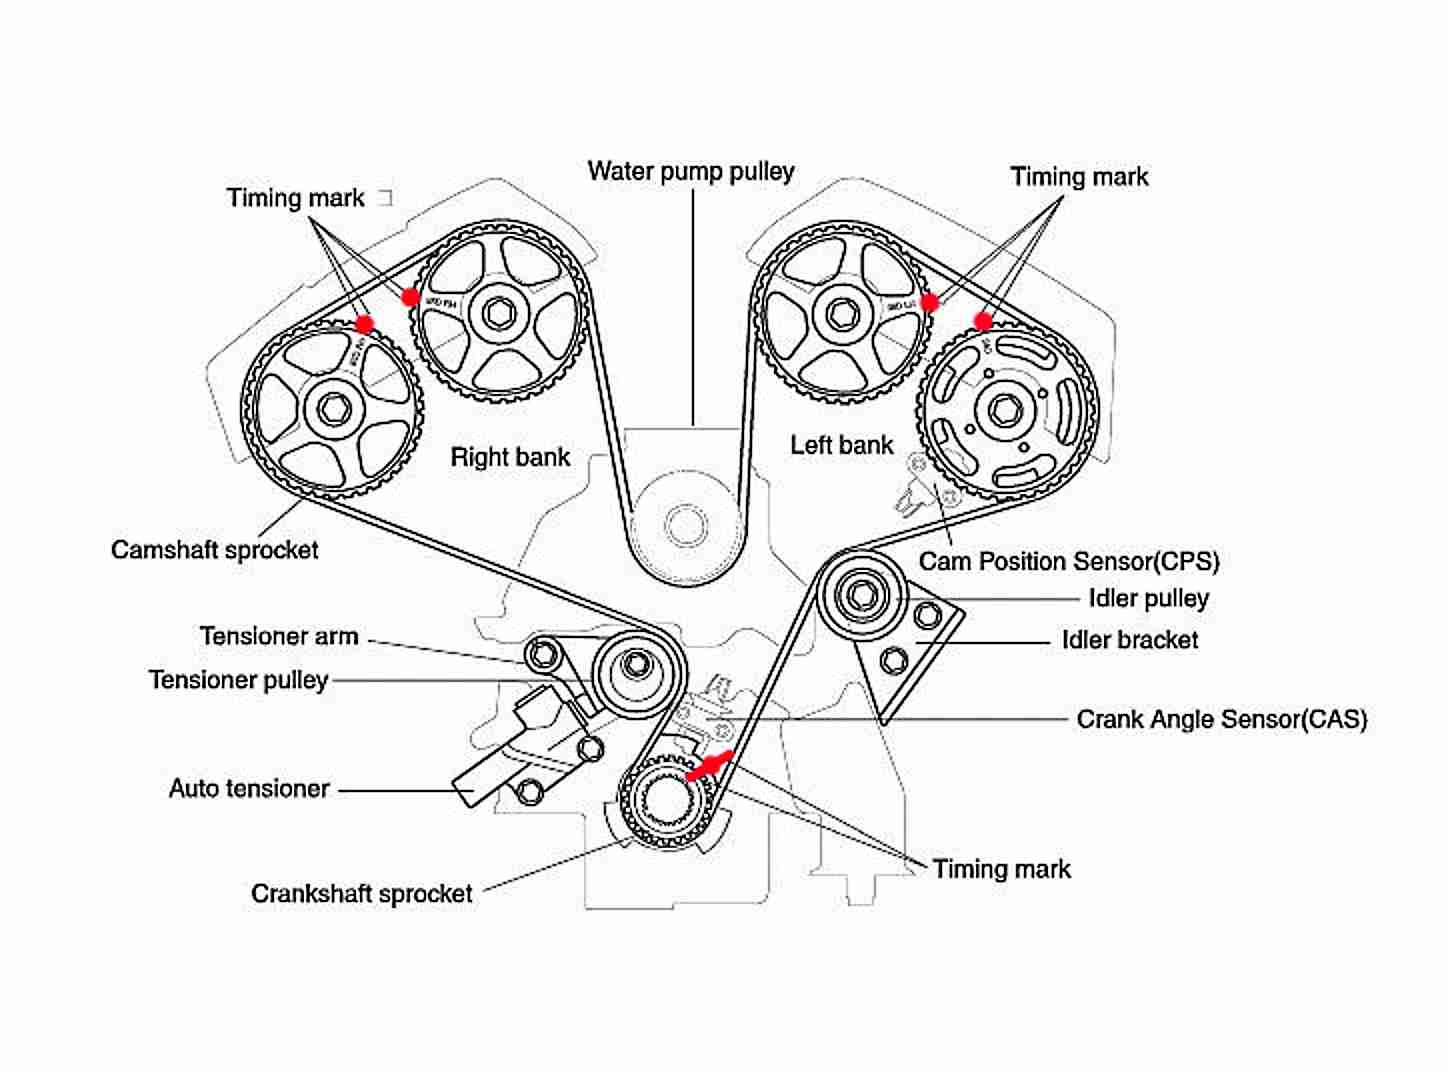 2013 Subaru Brz Fuse Box Diagram besides Wrx besides P0008 further Snap Ring Wheel Bearing 28335 additionally Scion Xb Fan Relay Location. on wrx clutch diagram